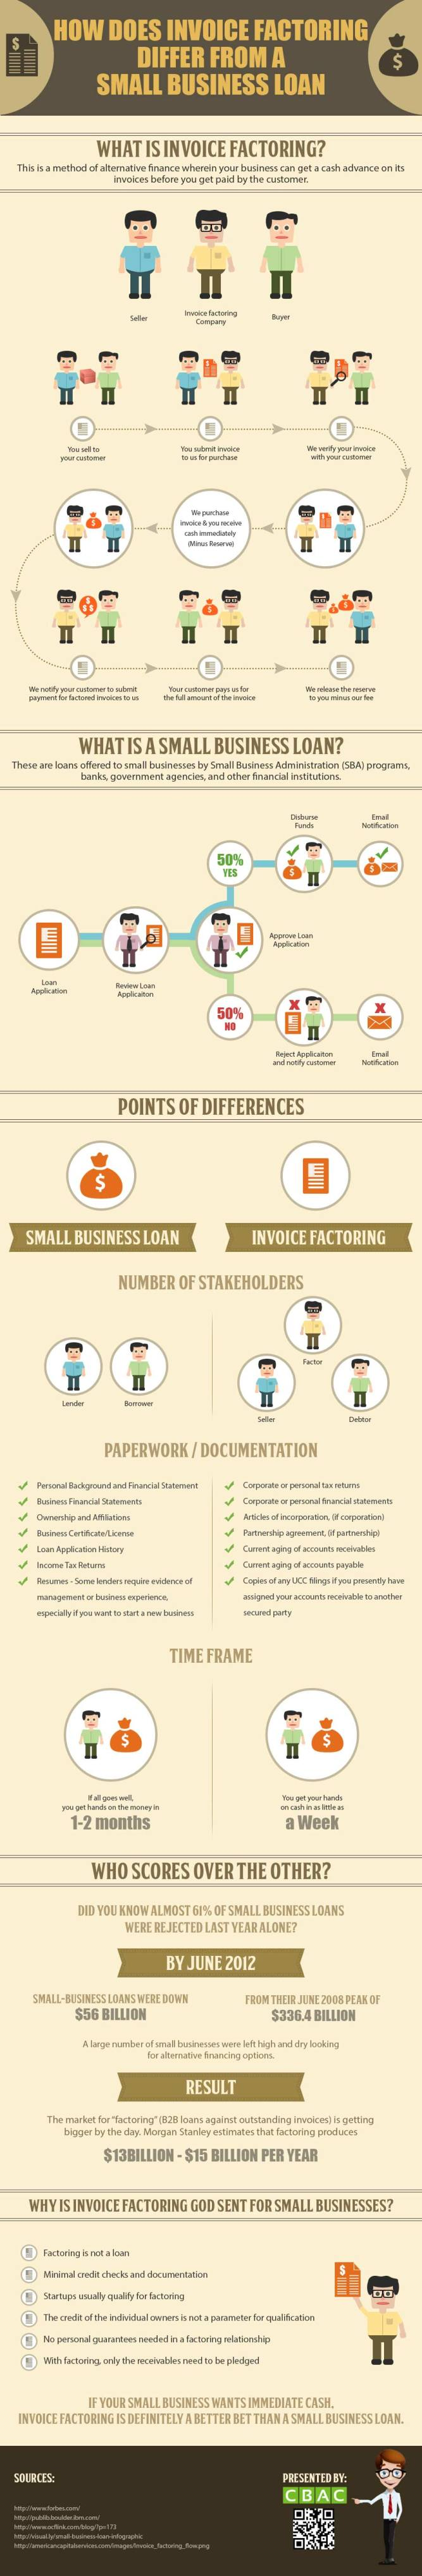 Invoice Discounting Company Word Invoice Factoring And Small Business Loans  Know The Basic  Free Template Invoice Pdf with Invoice With Vat Word Invoice Factoring Best Way To Organize Receipts Word